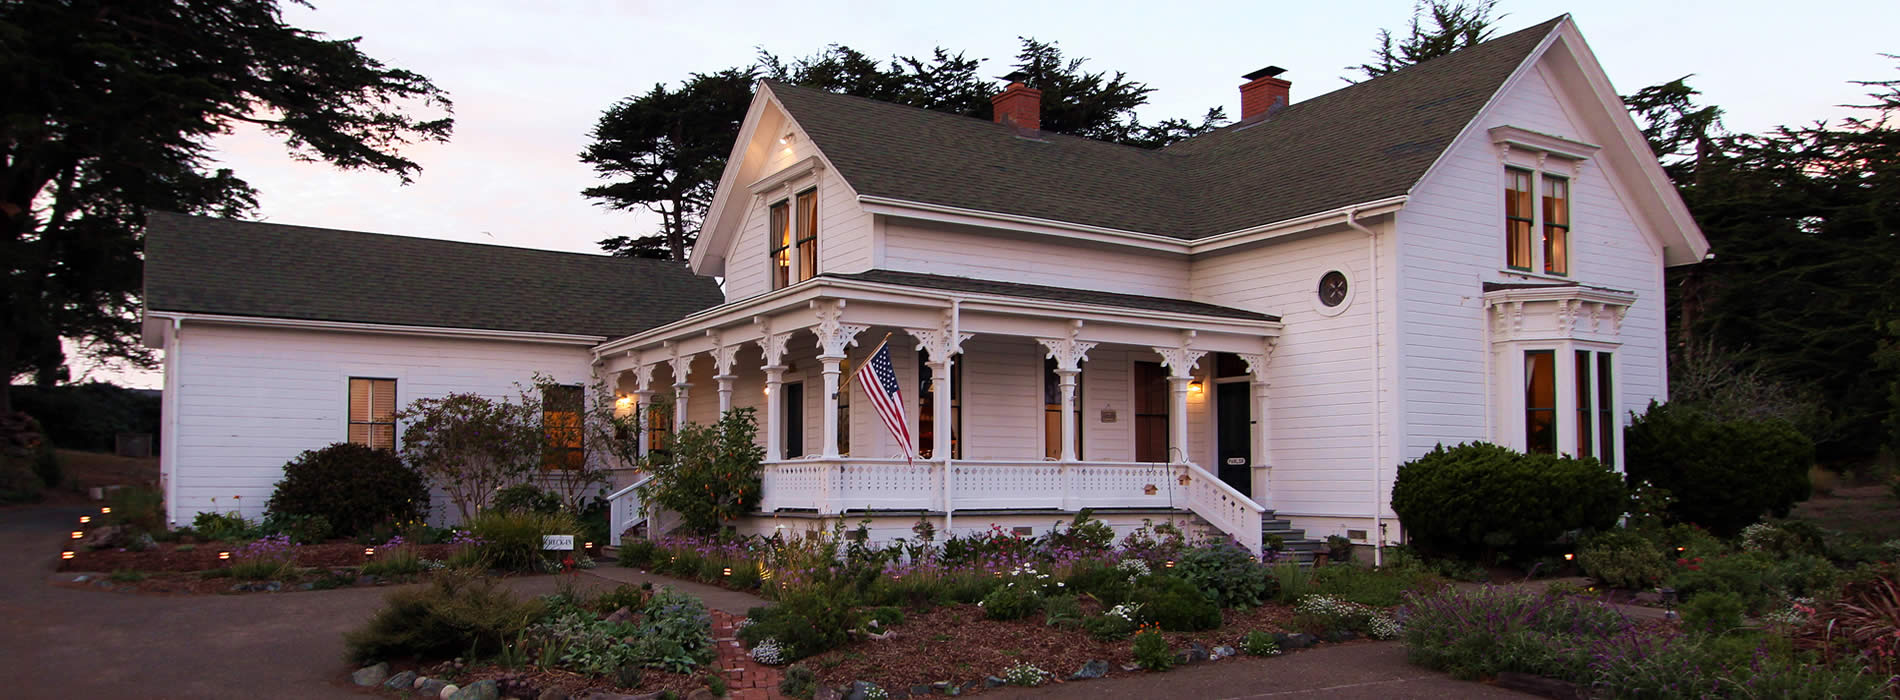 joshua grindle inn mendocino bed and breakfast lodging